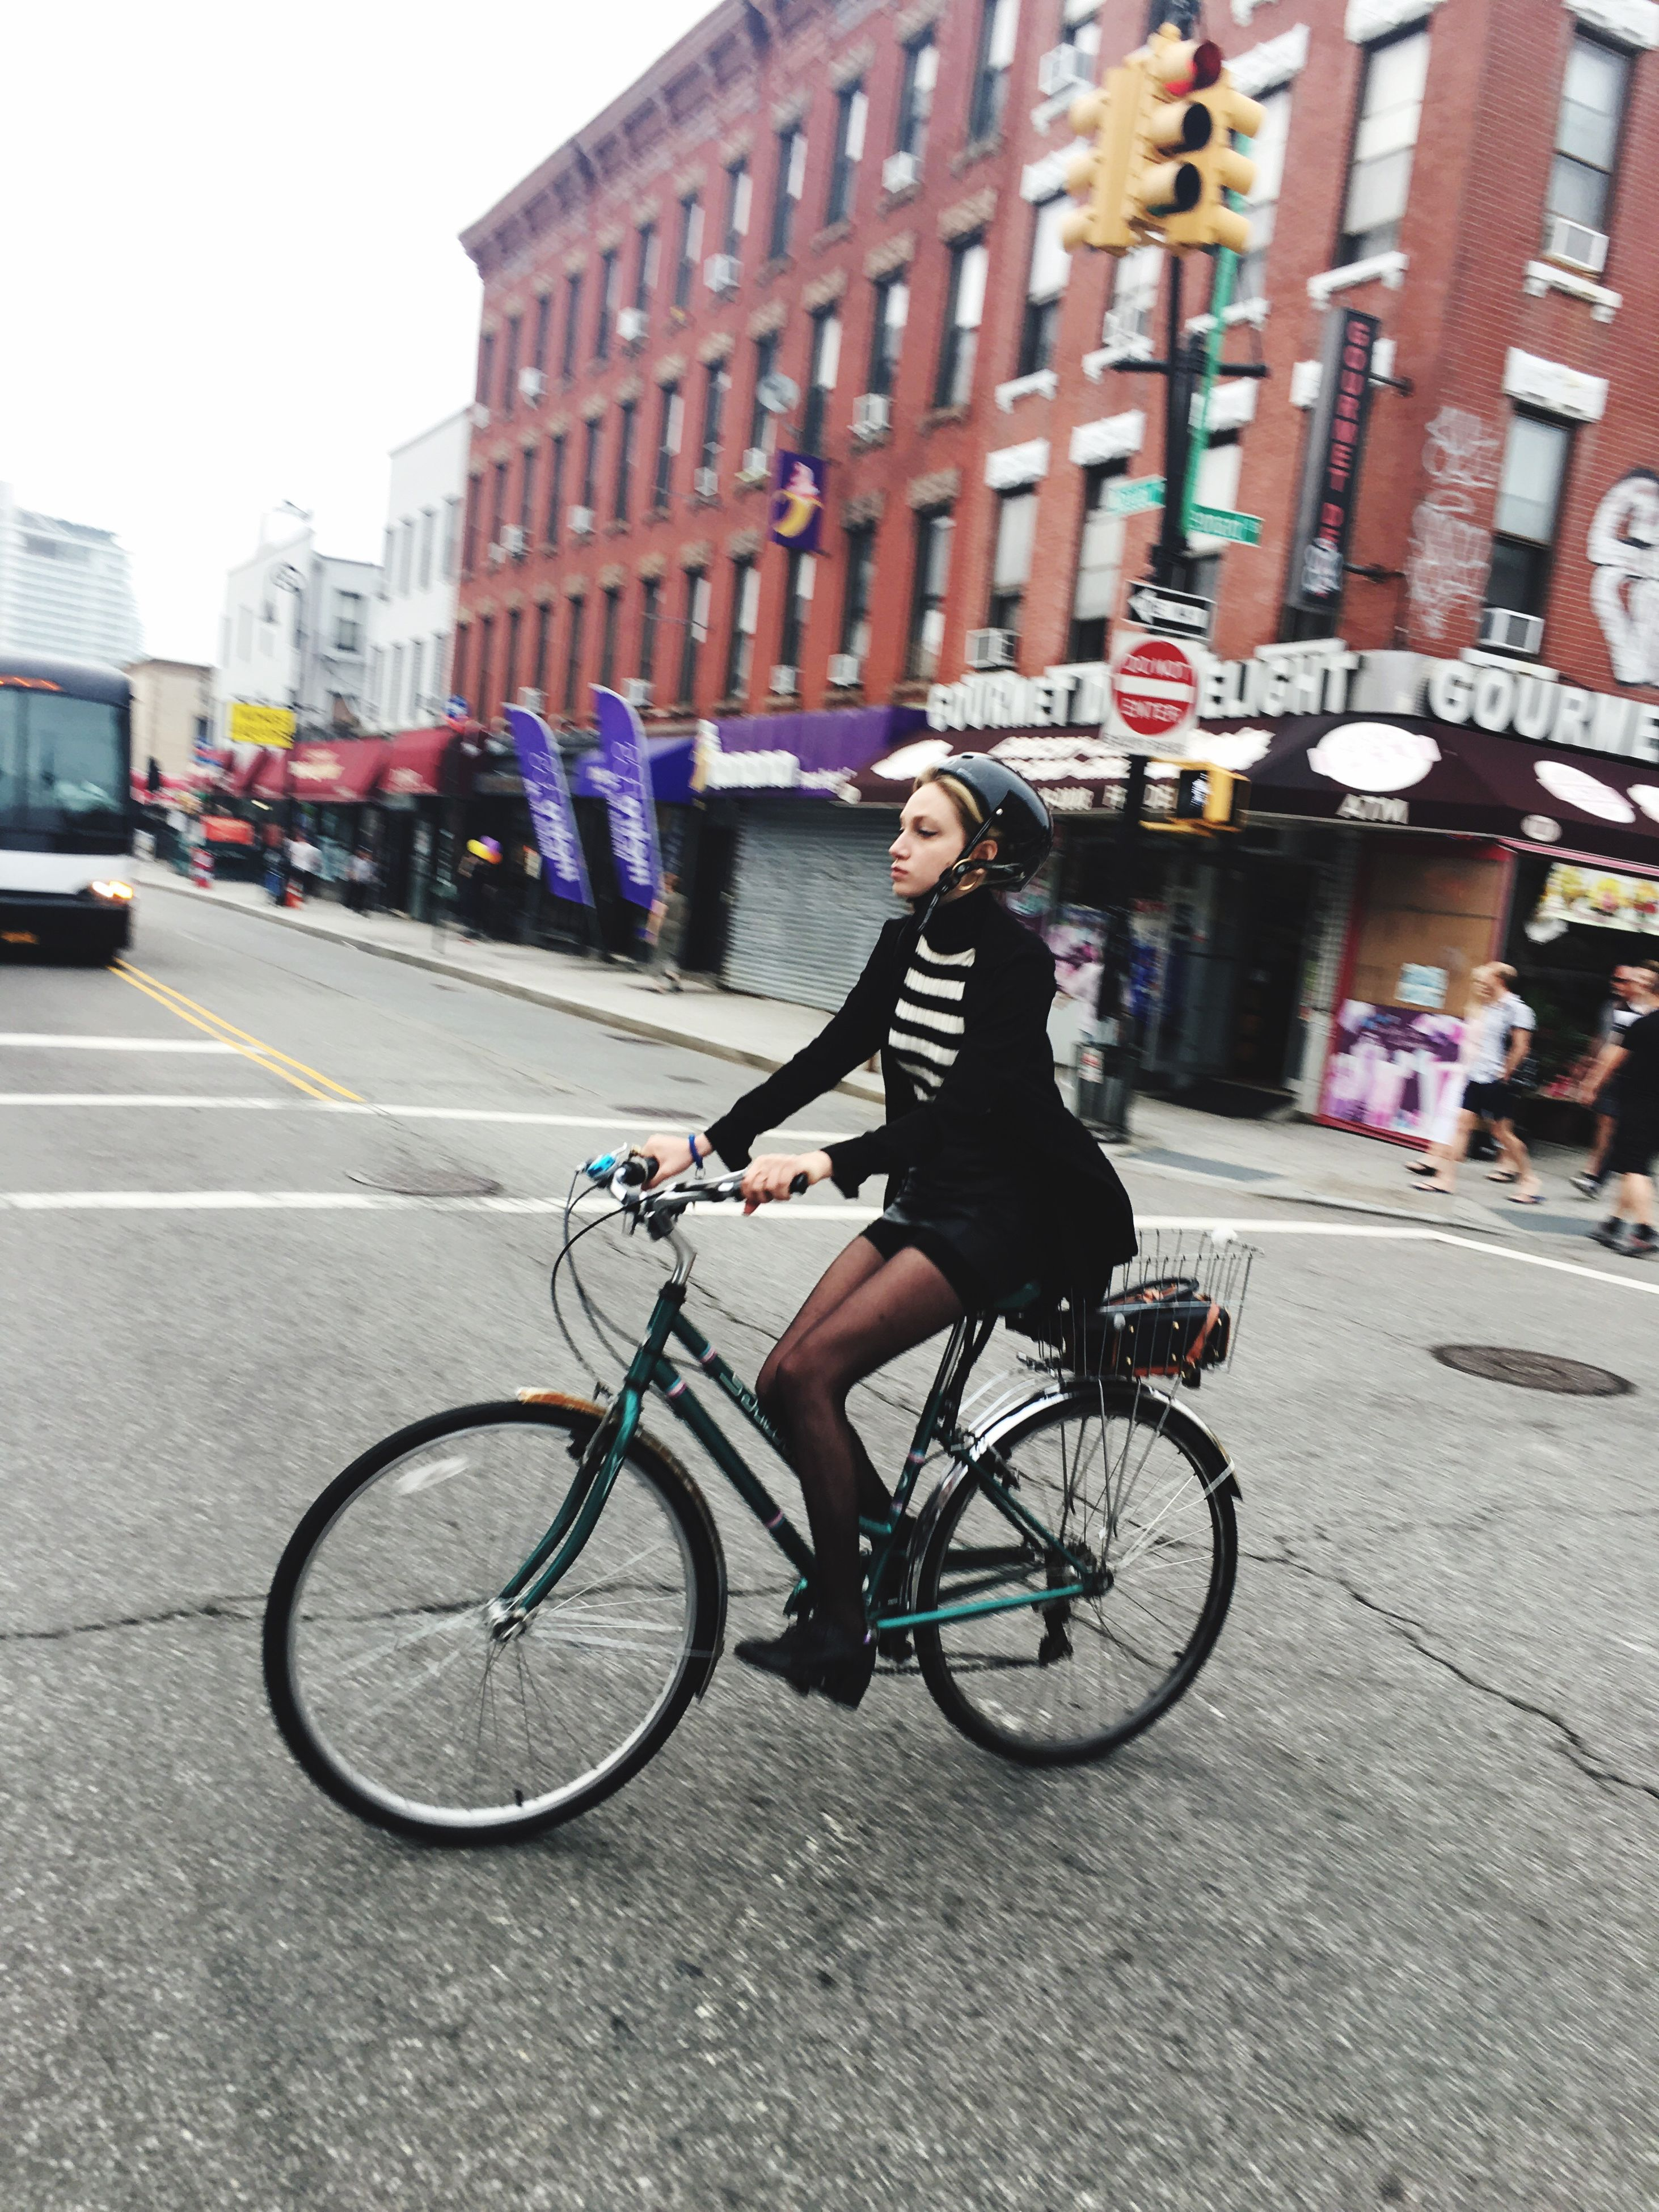 bicycle, transportation, full length, architecture, one person, real people, built structure, building exterior, street, mode of transport, land vehicle, cycling, city, outdoors, lifestyles, riding, casual clothing, city life, day, road, young adult, young women, adult, people